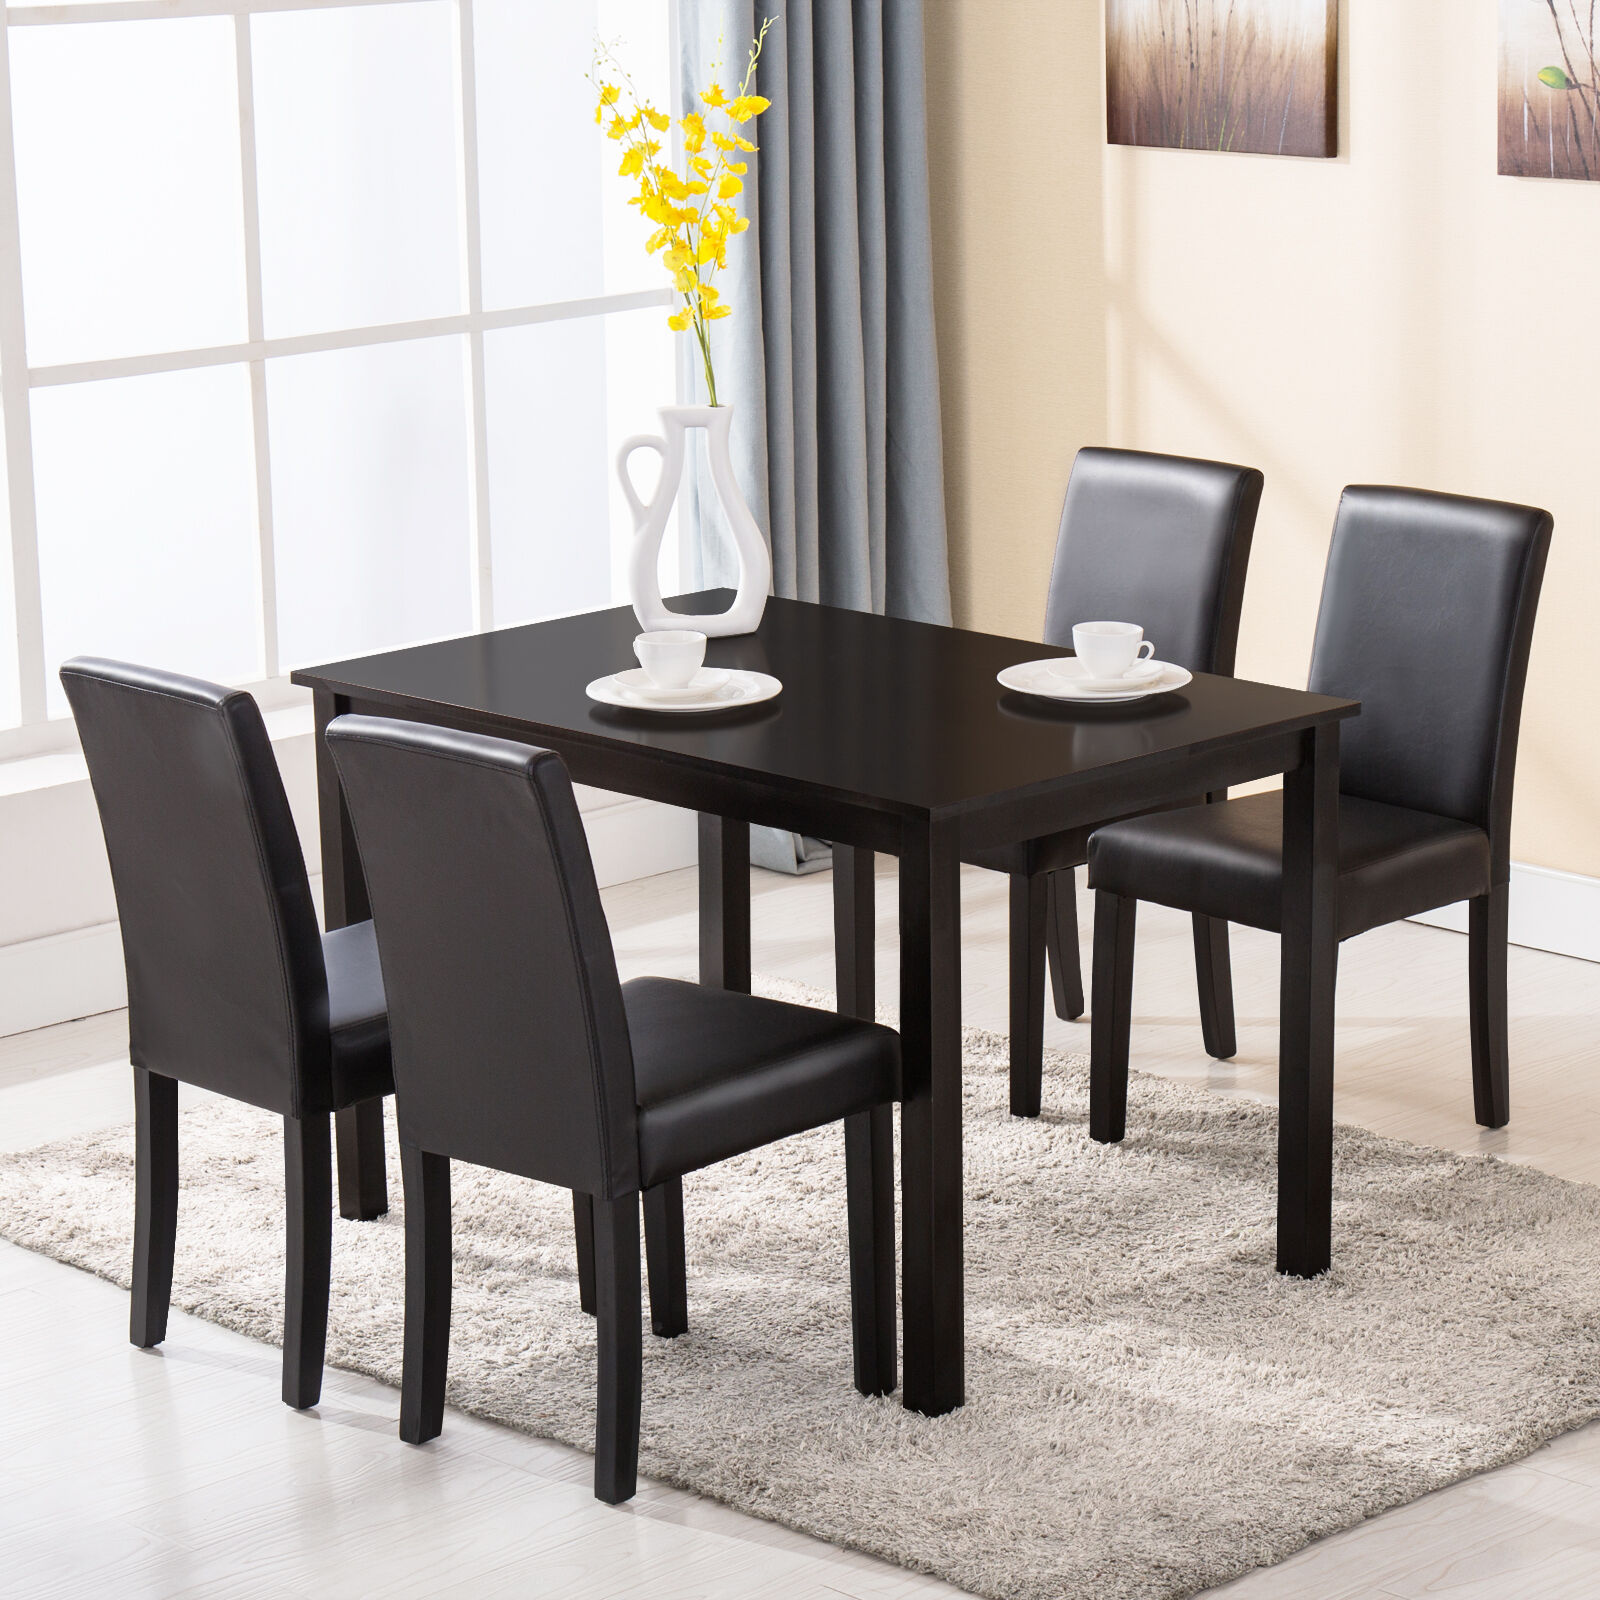 5 piece dining table set 4 chairs wood kitchen dinette for Four chair dining table